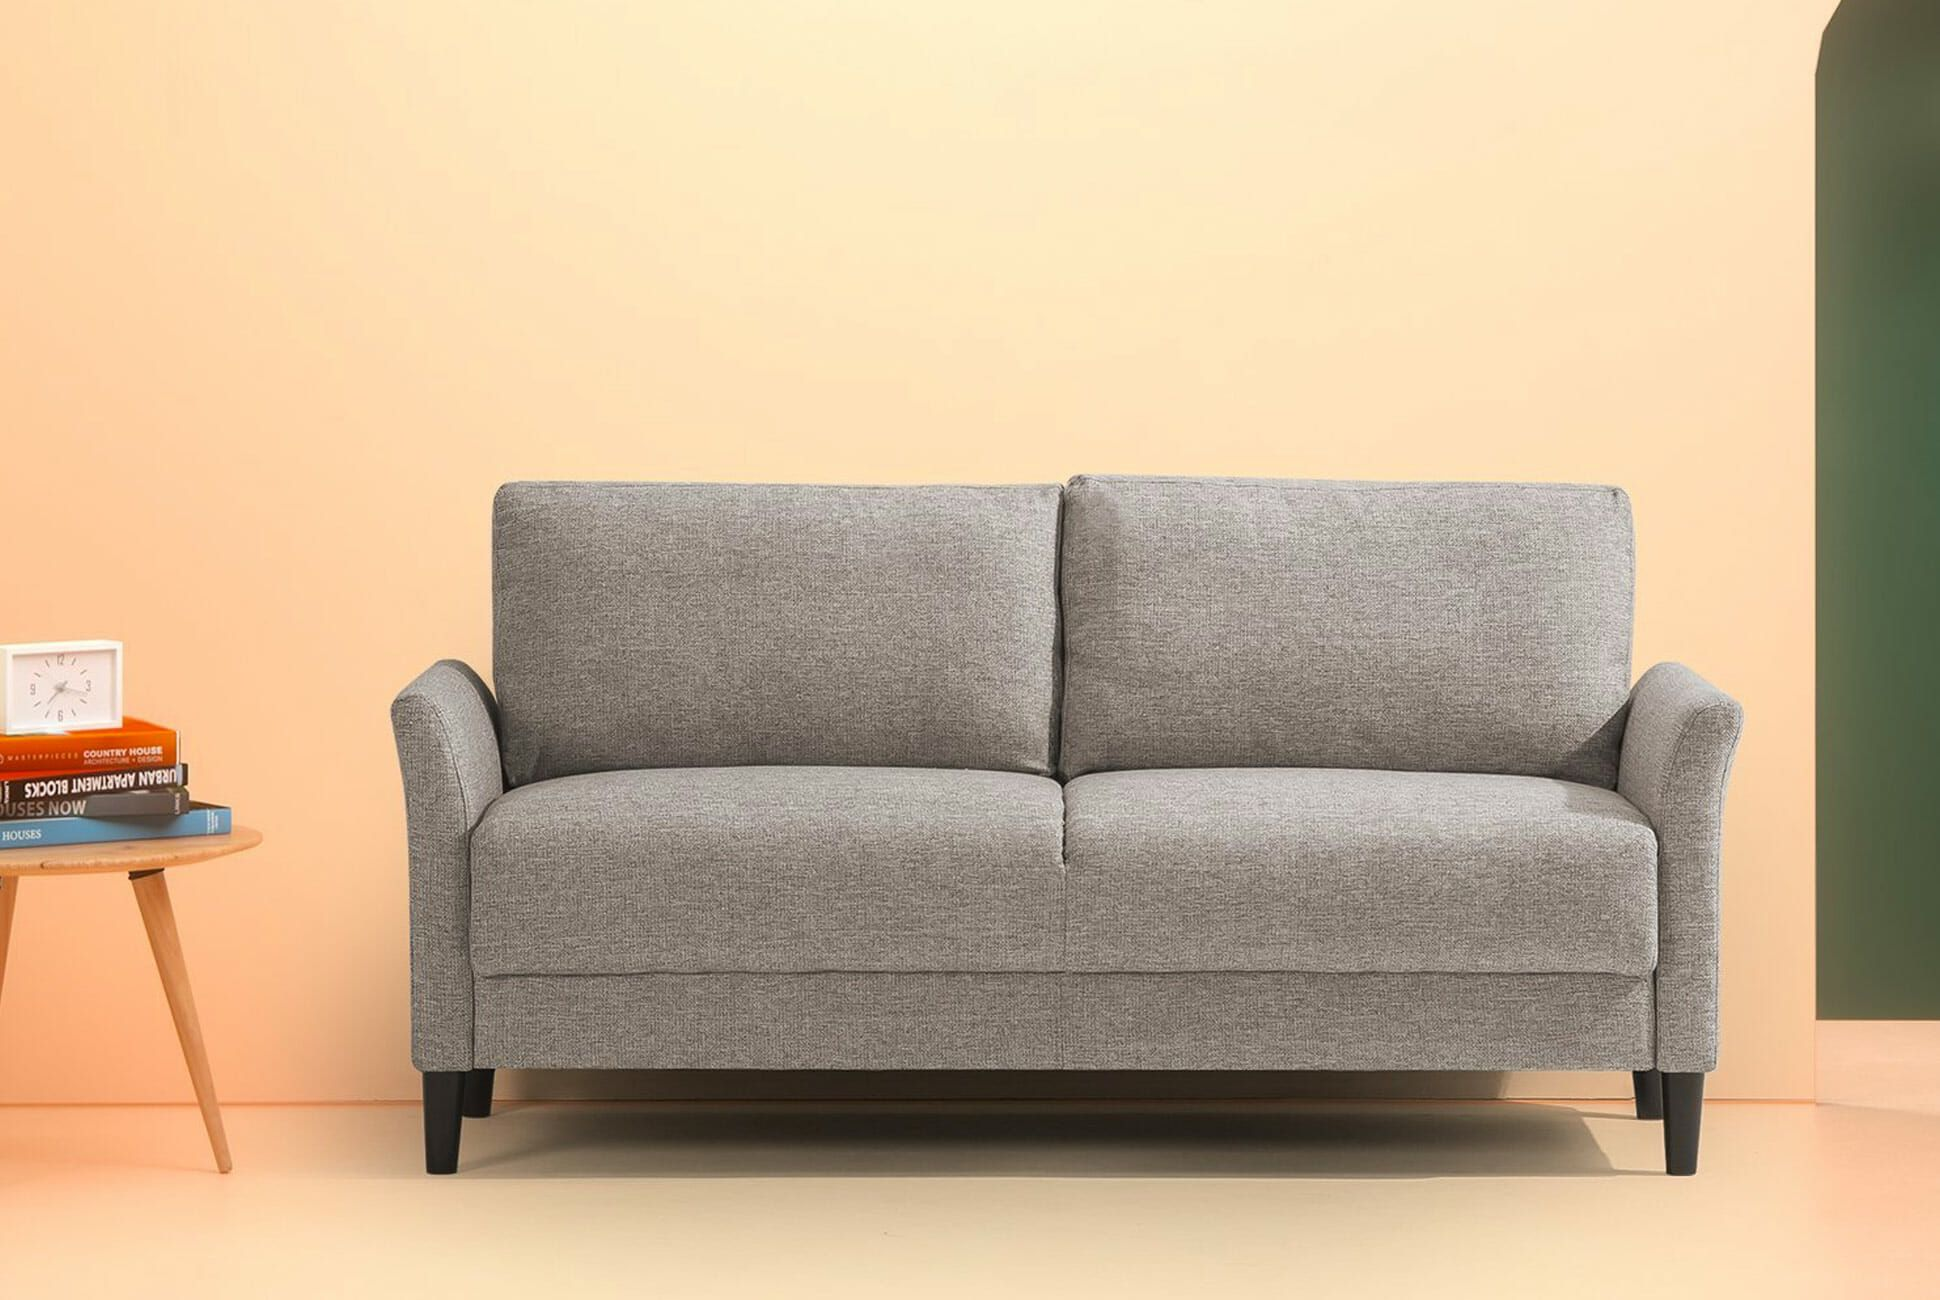 Admirable These Couches Are Perfect For A First Apartment Gear Patrol Machost Co Dining Chair Design Ideas Machostcouk